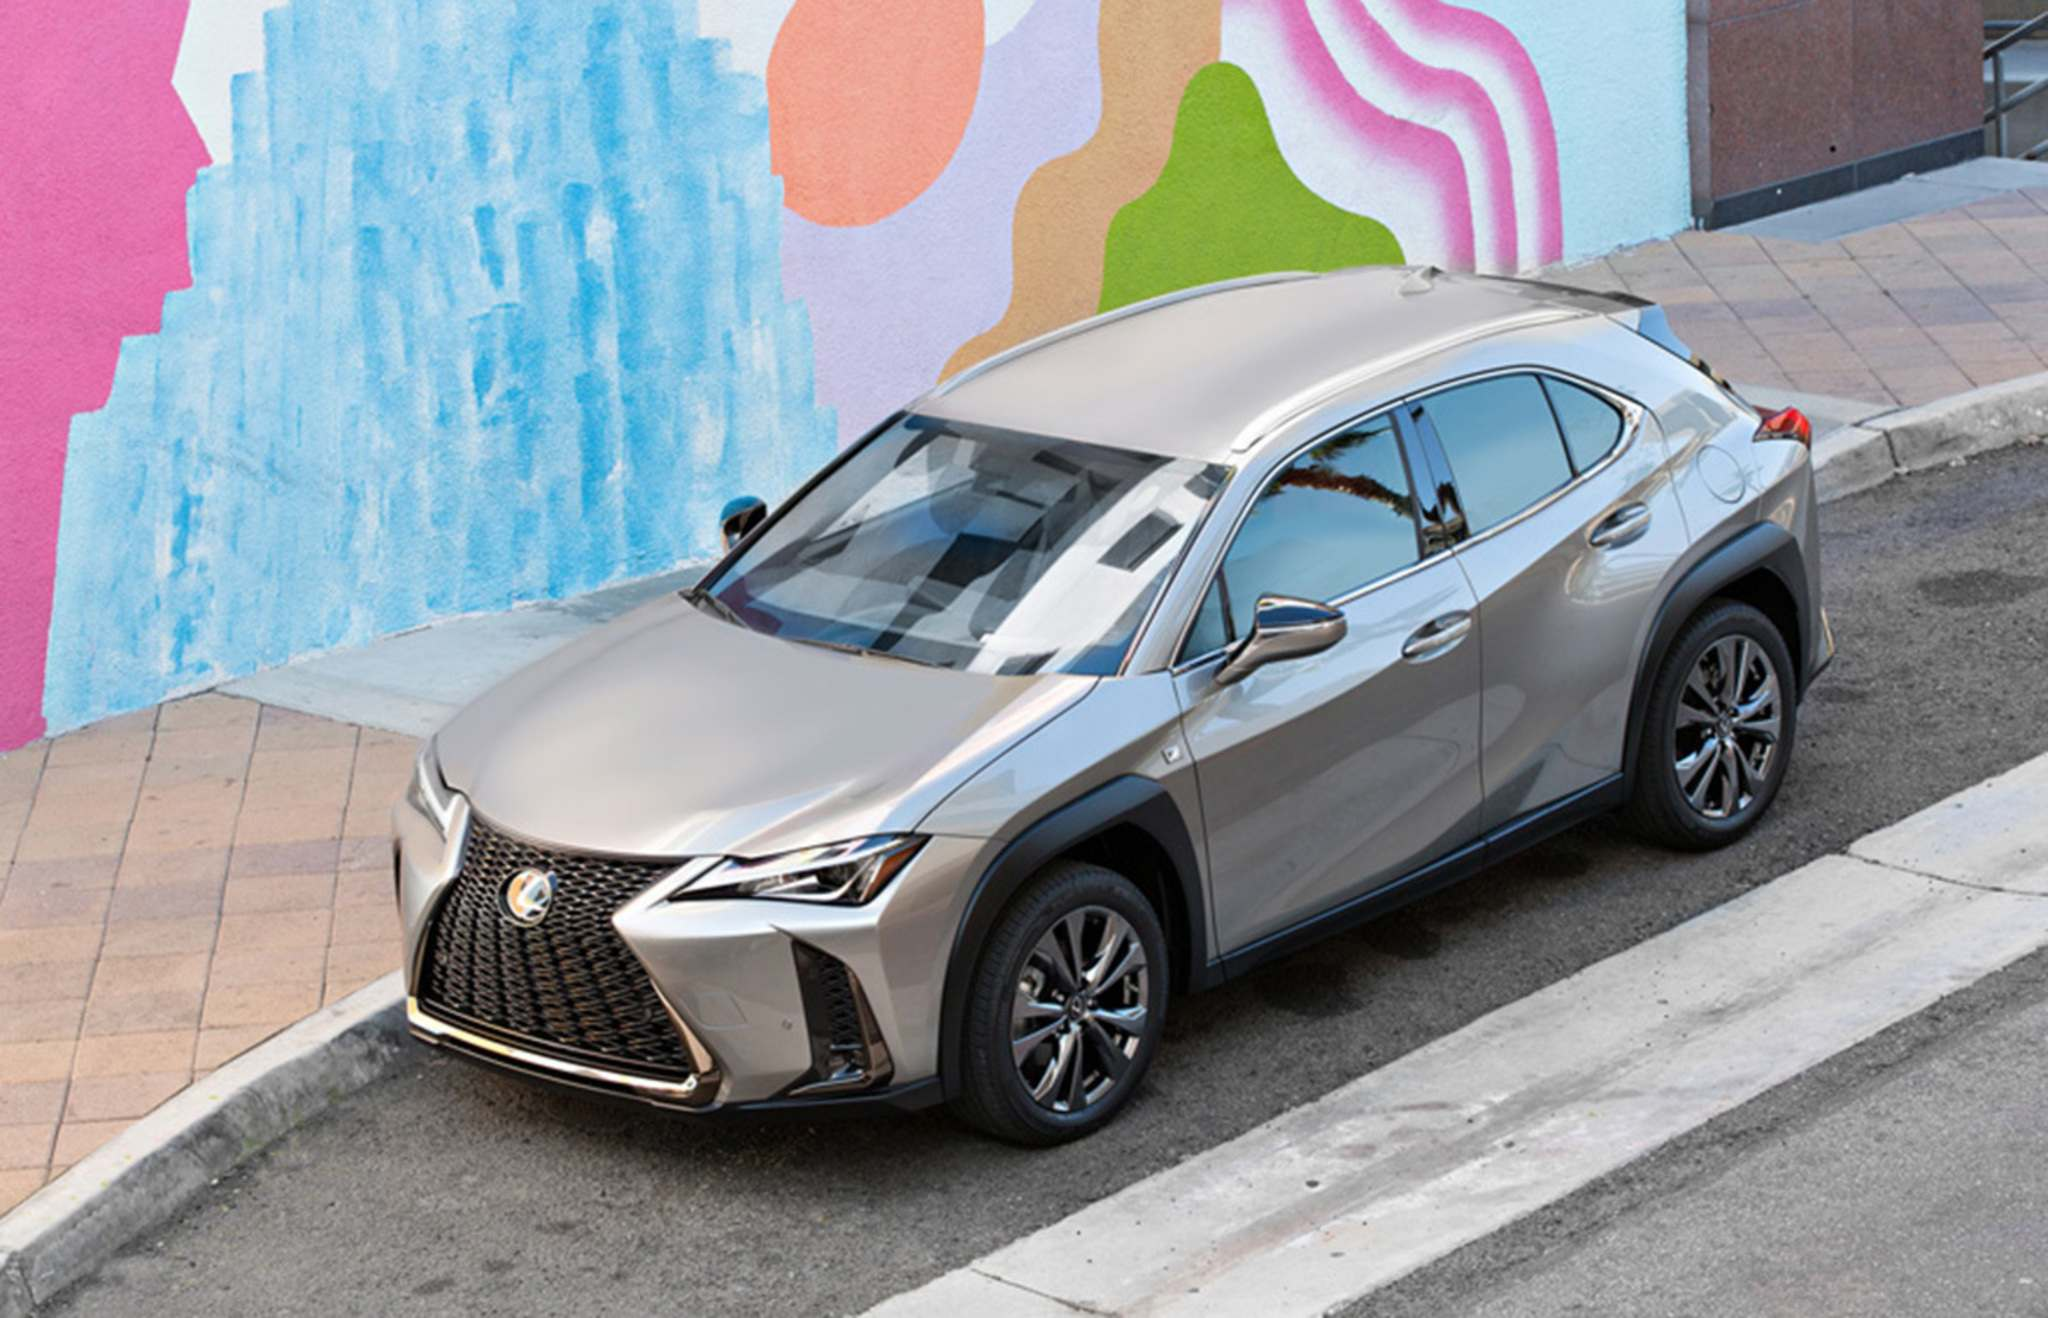 LexusThe new Lexus UX is expected to arrive in Winnipeg in late December or early January.